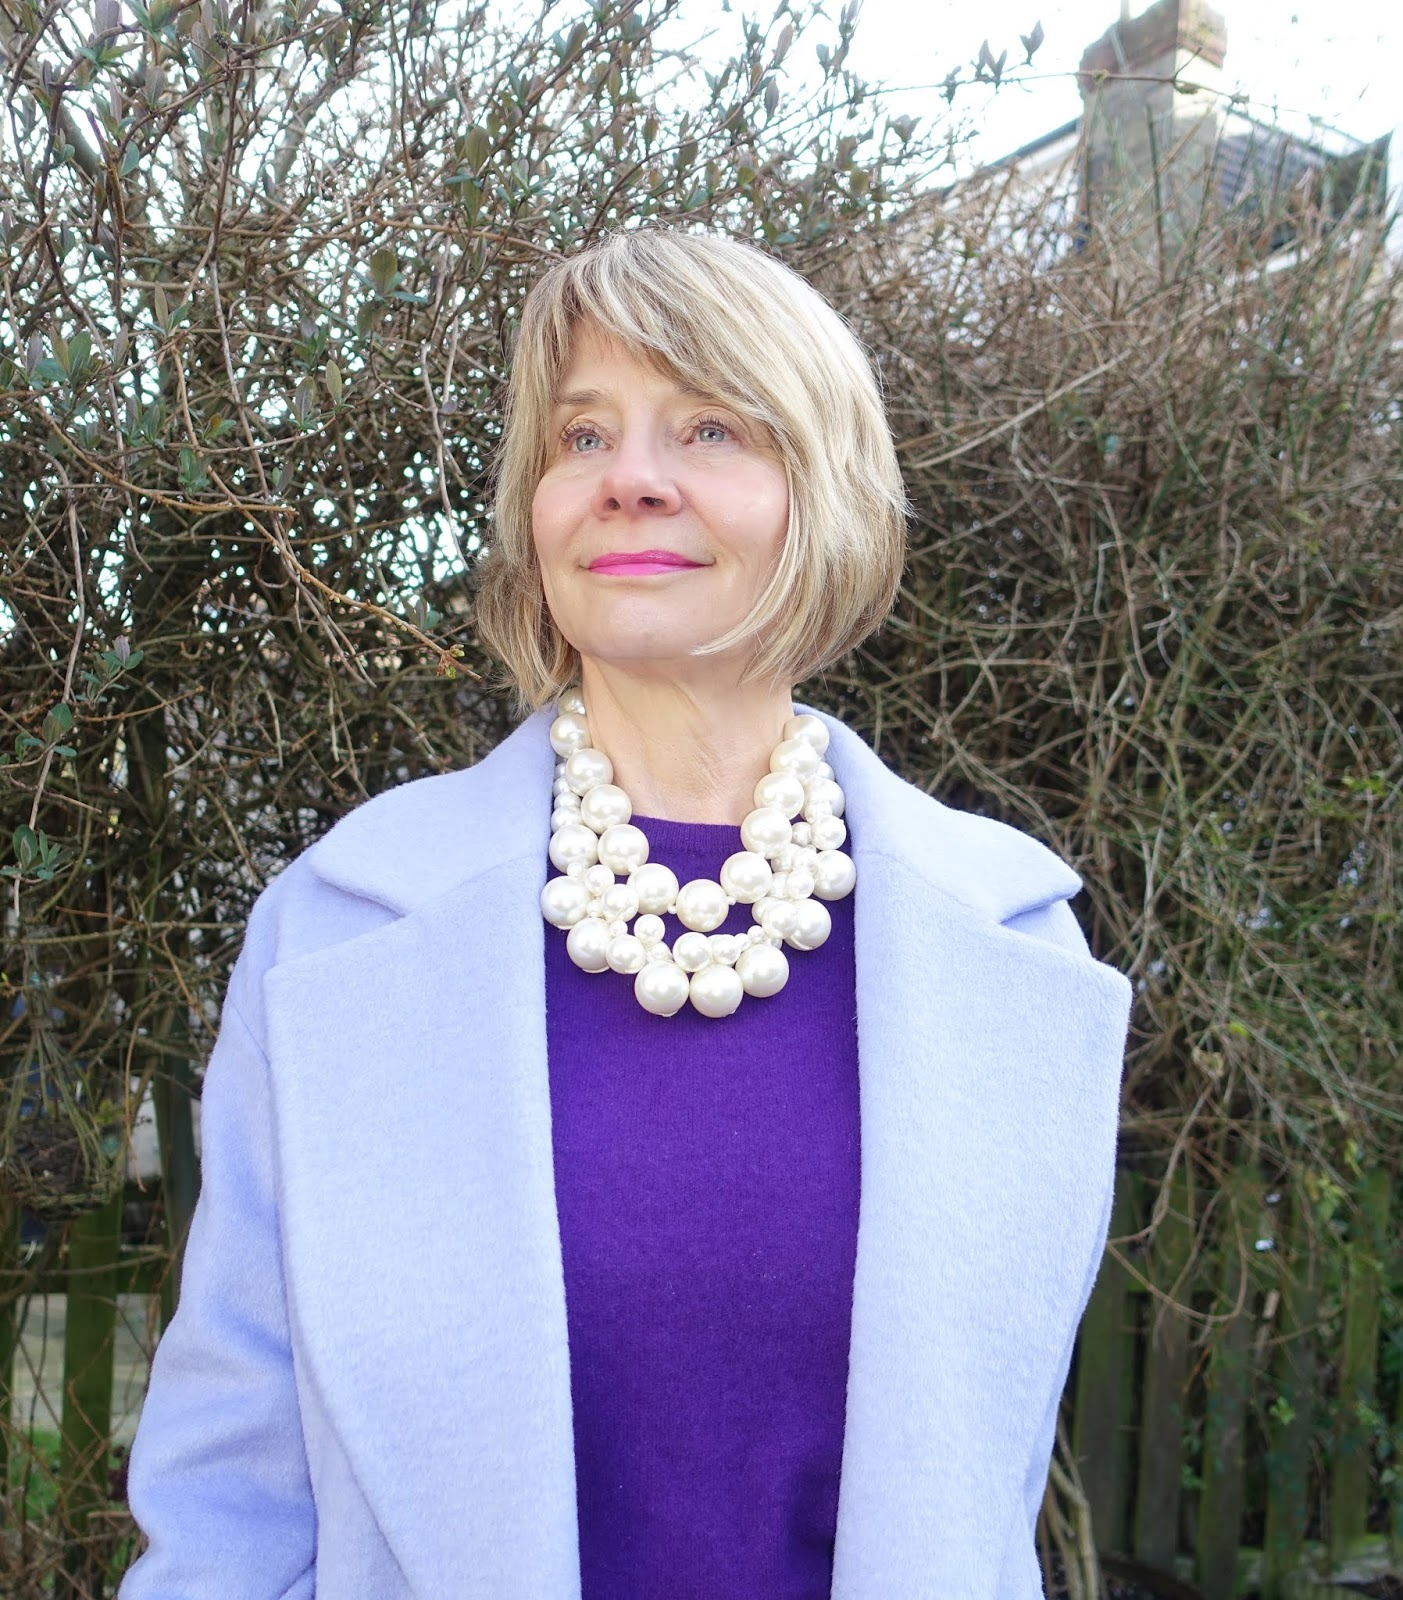 Gail Hanlon from Is This Mutton in lilac cashmere coat, purple jumper and layered chunky pearl necklaces